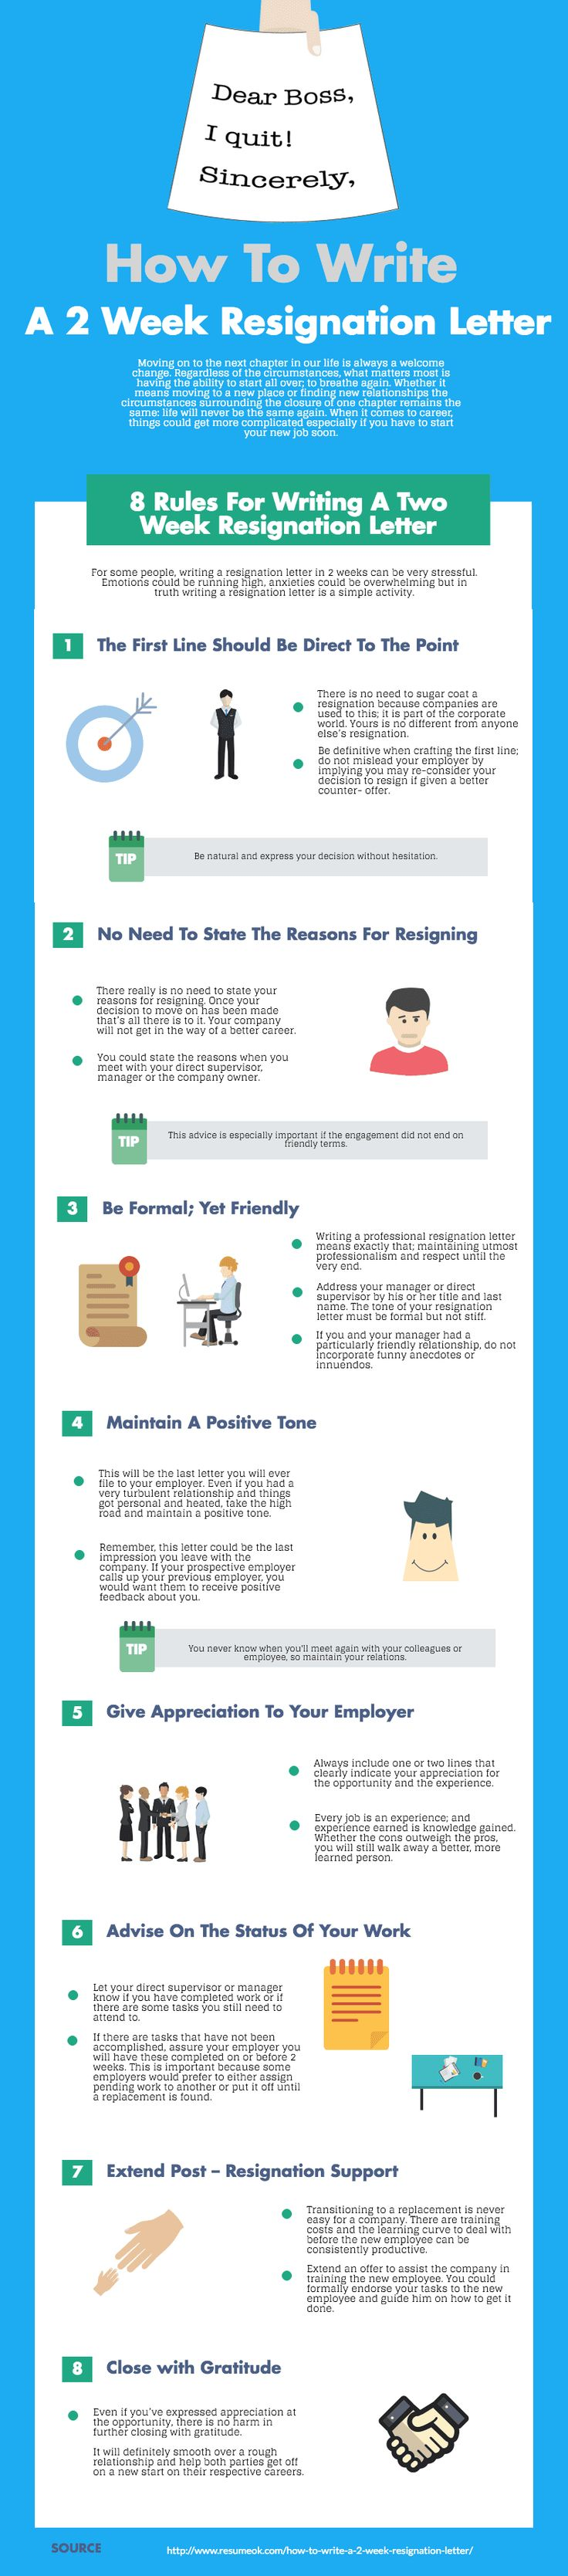 1000 ideas about resignation letter sample of how to write a 2 week resignation letter infographic